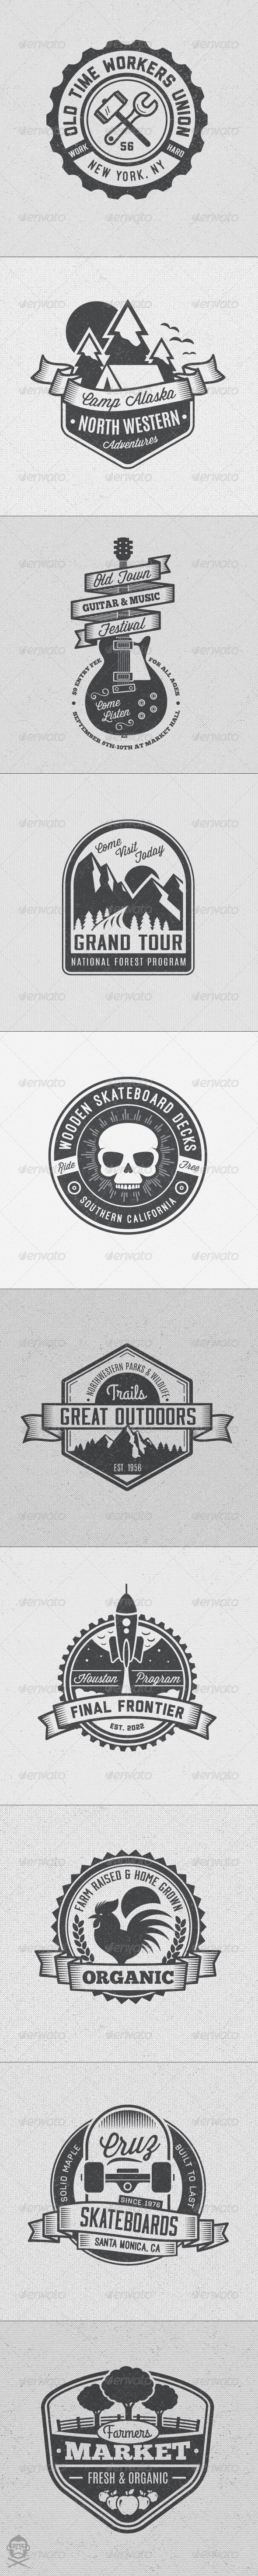 GraphicRiver Vintage Style Badges and Logos Vol 4 8594929